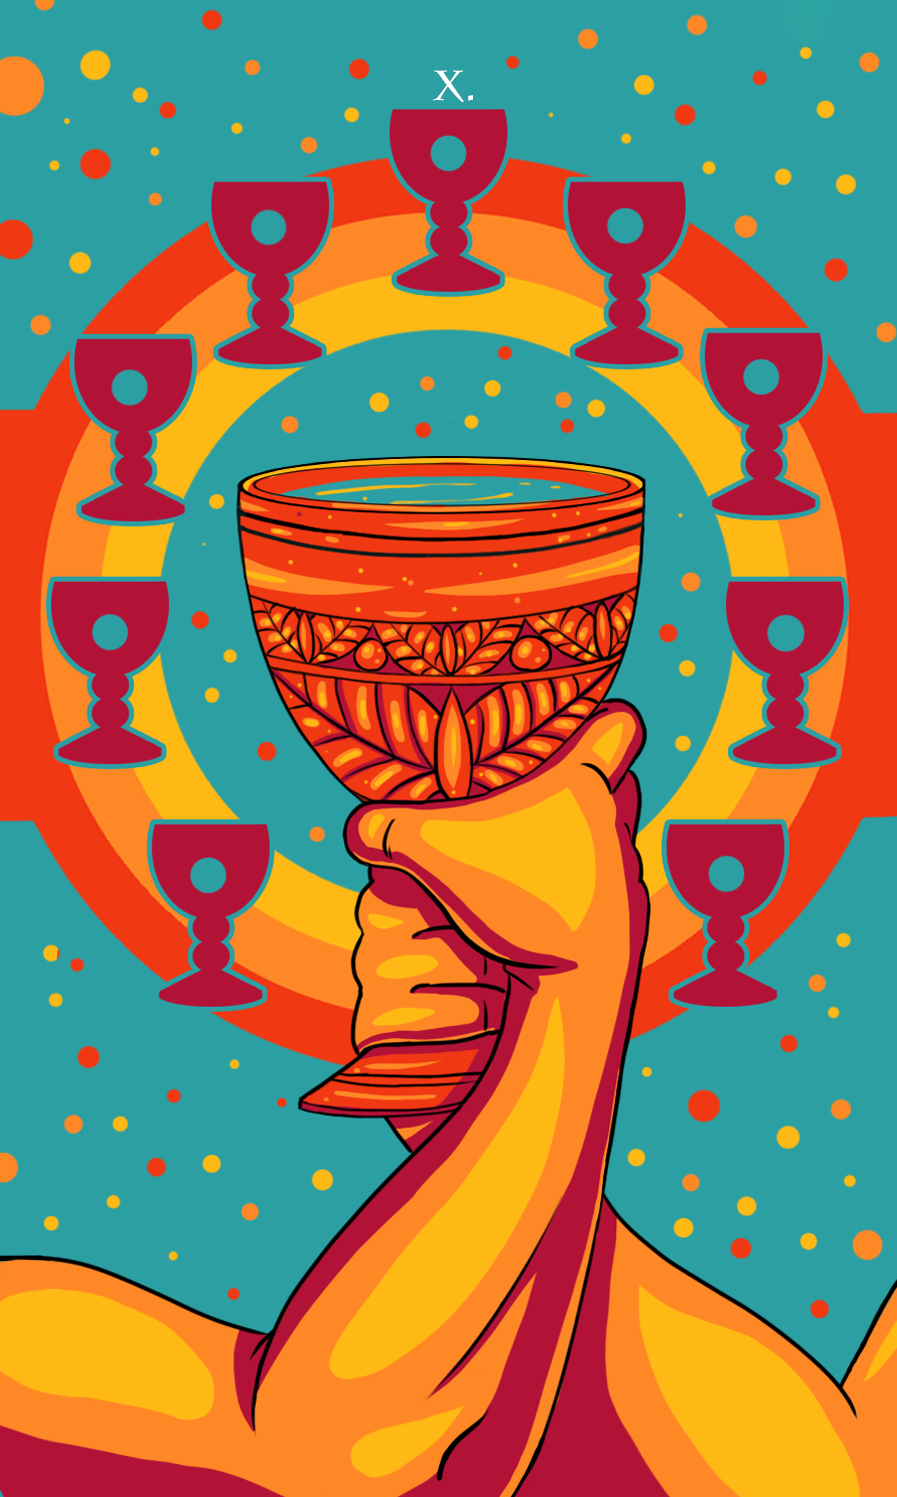 ten of cups illustration